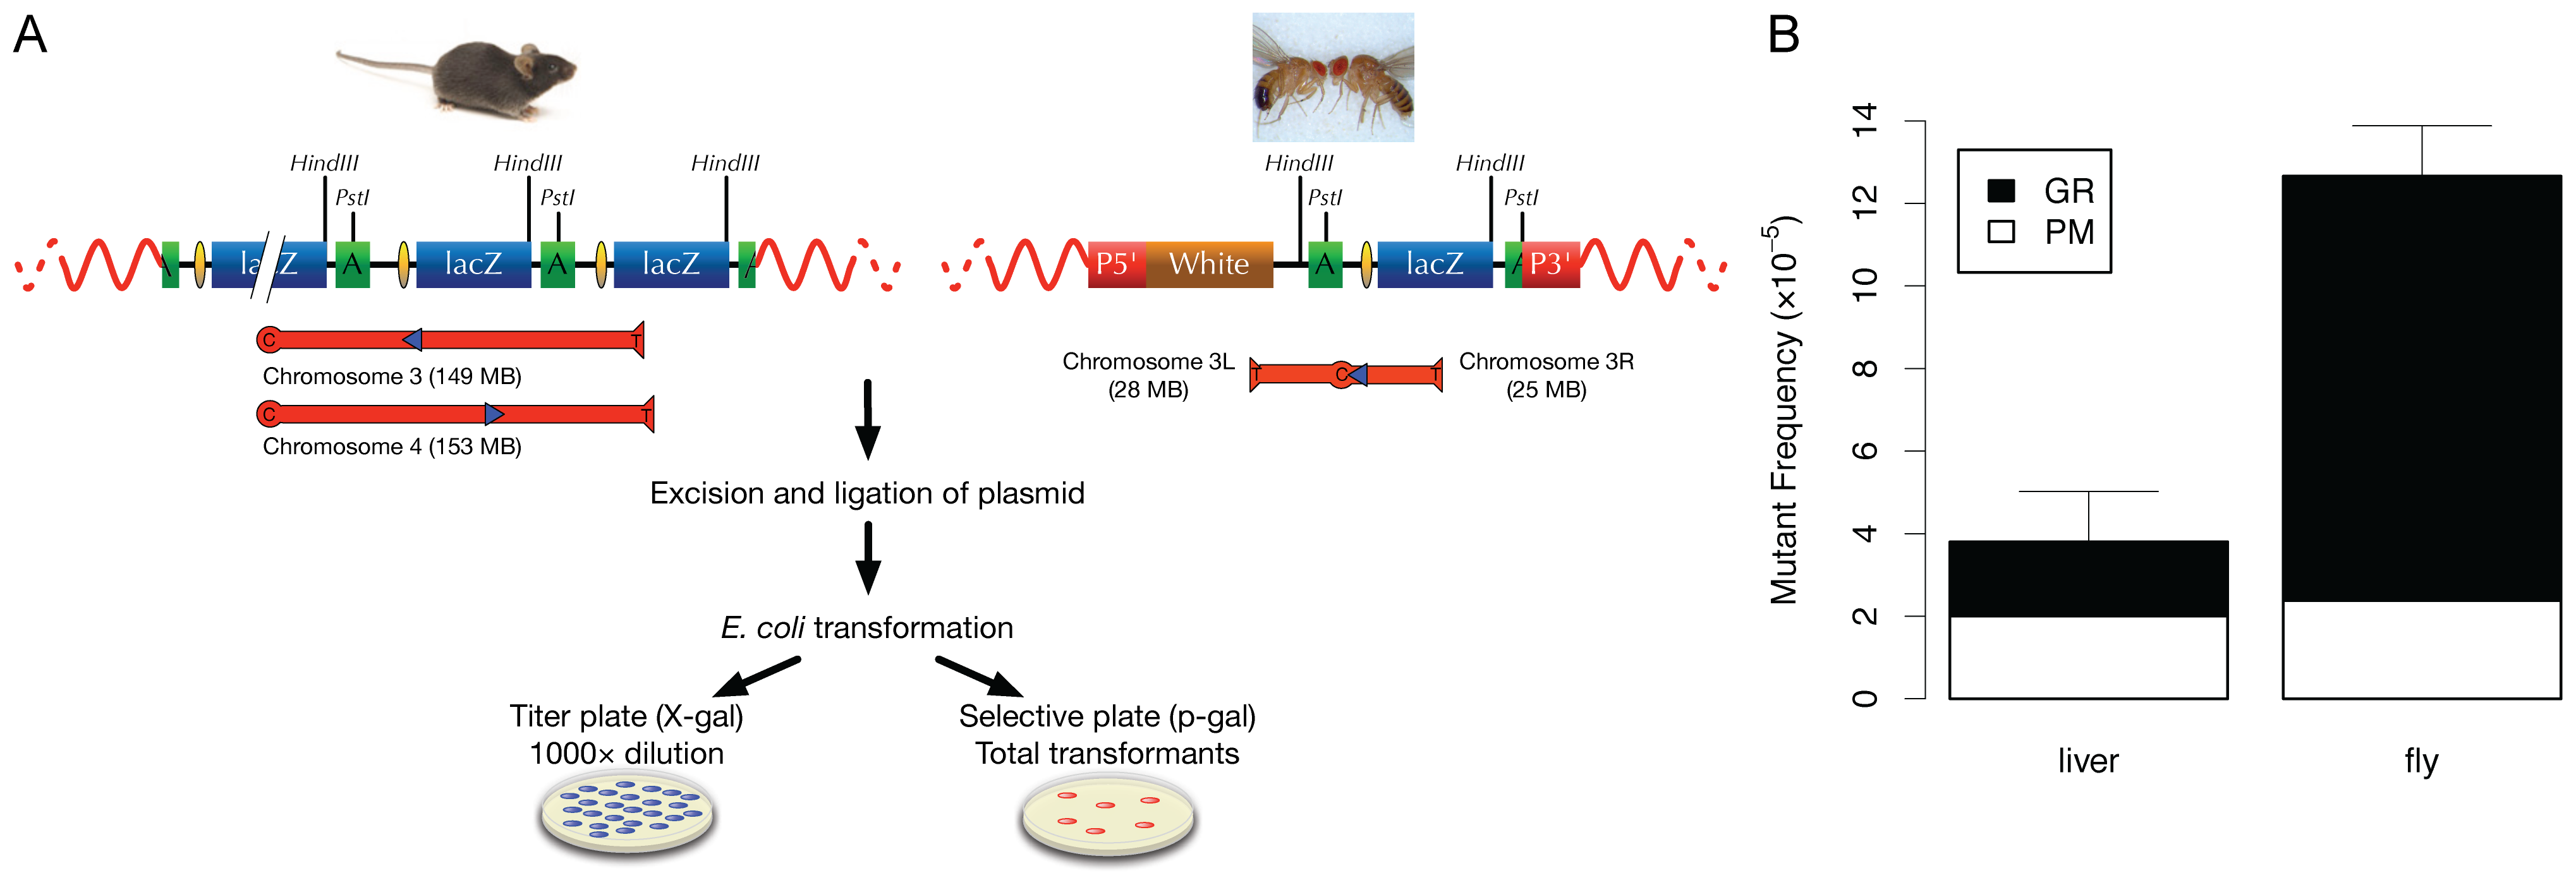 Comparative analysis of somatic mutations in mice and flies.